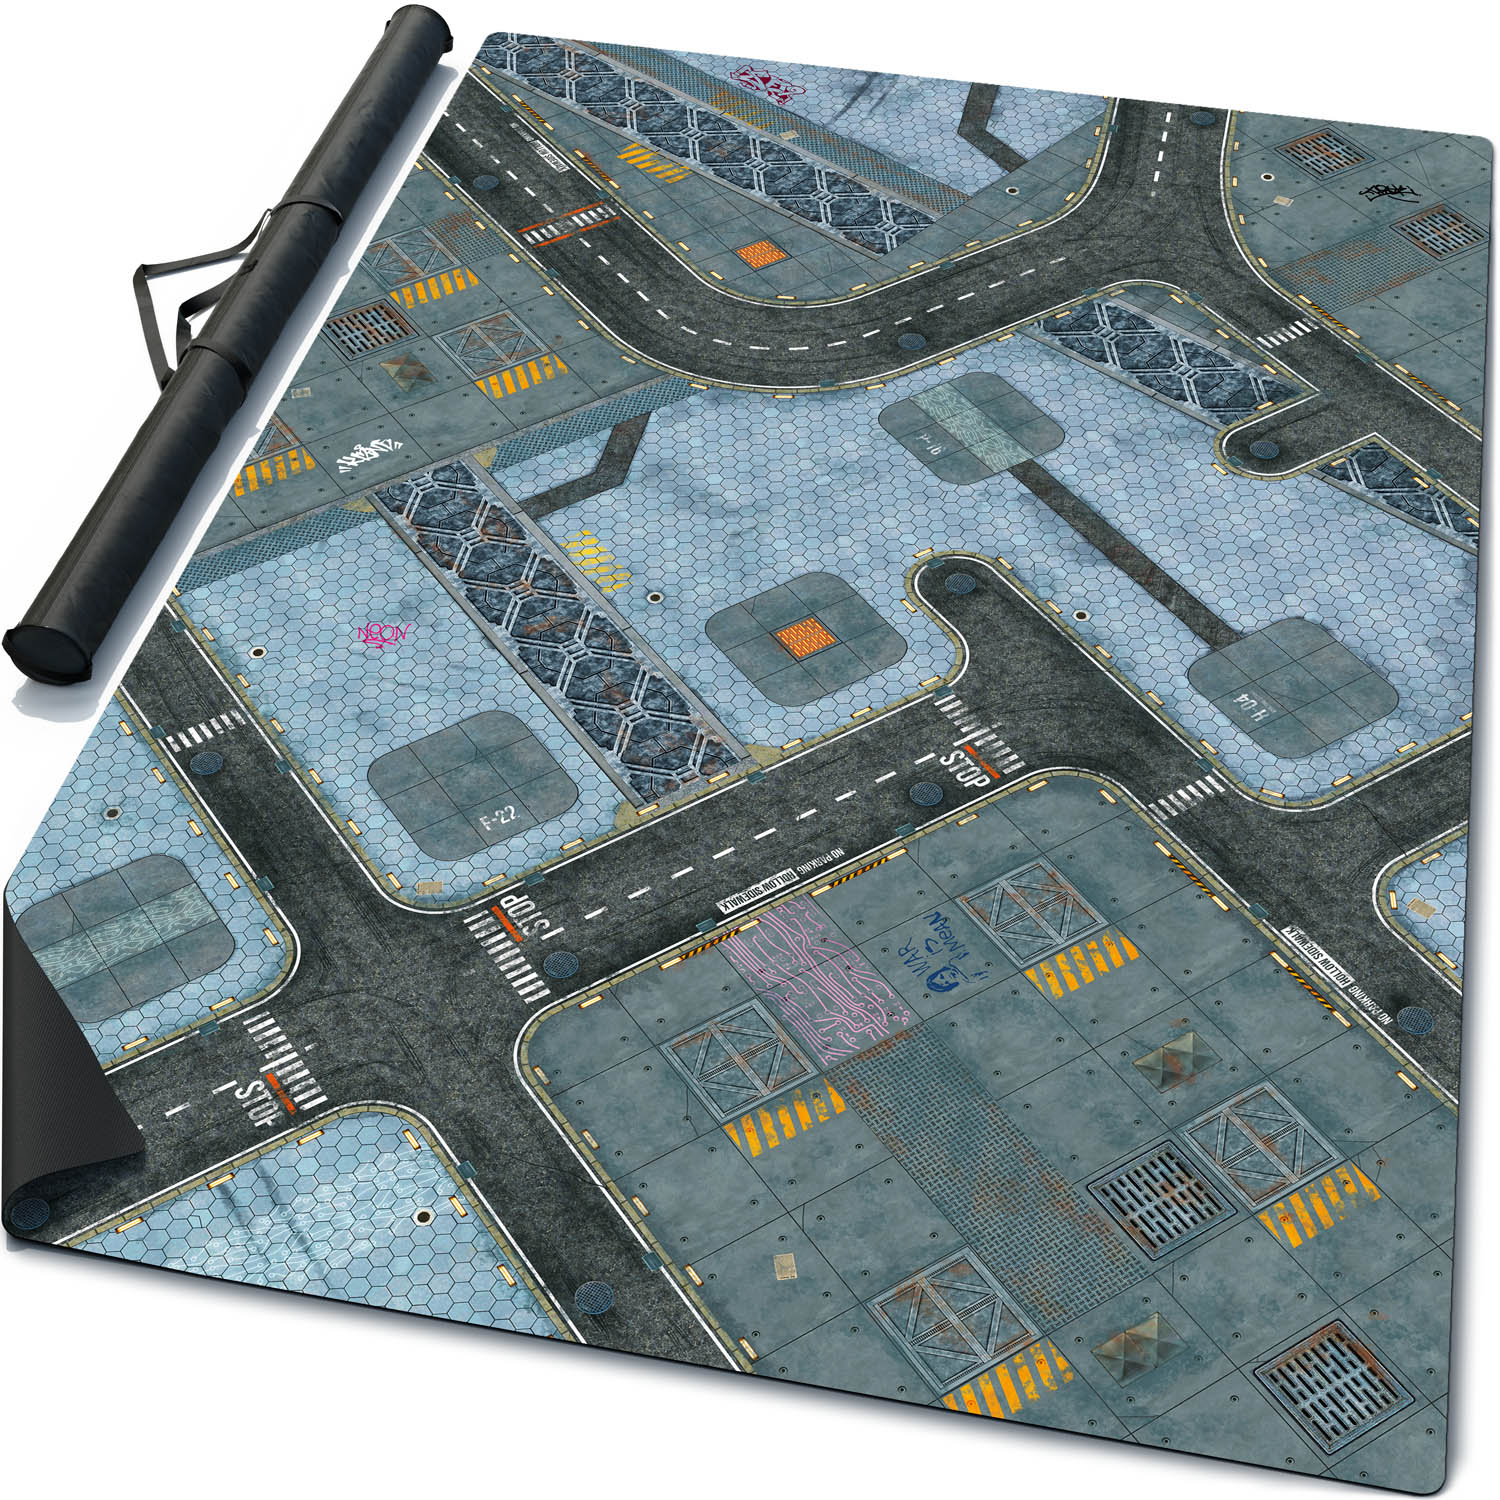 Battle mat: Incorporation